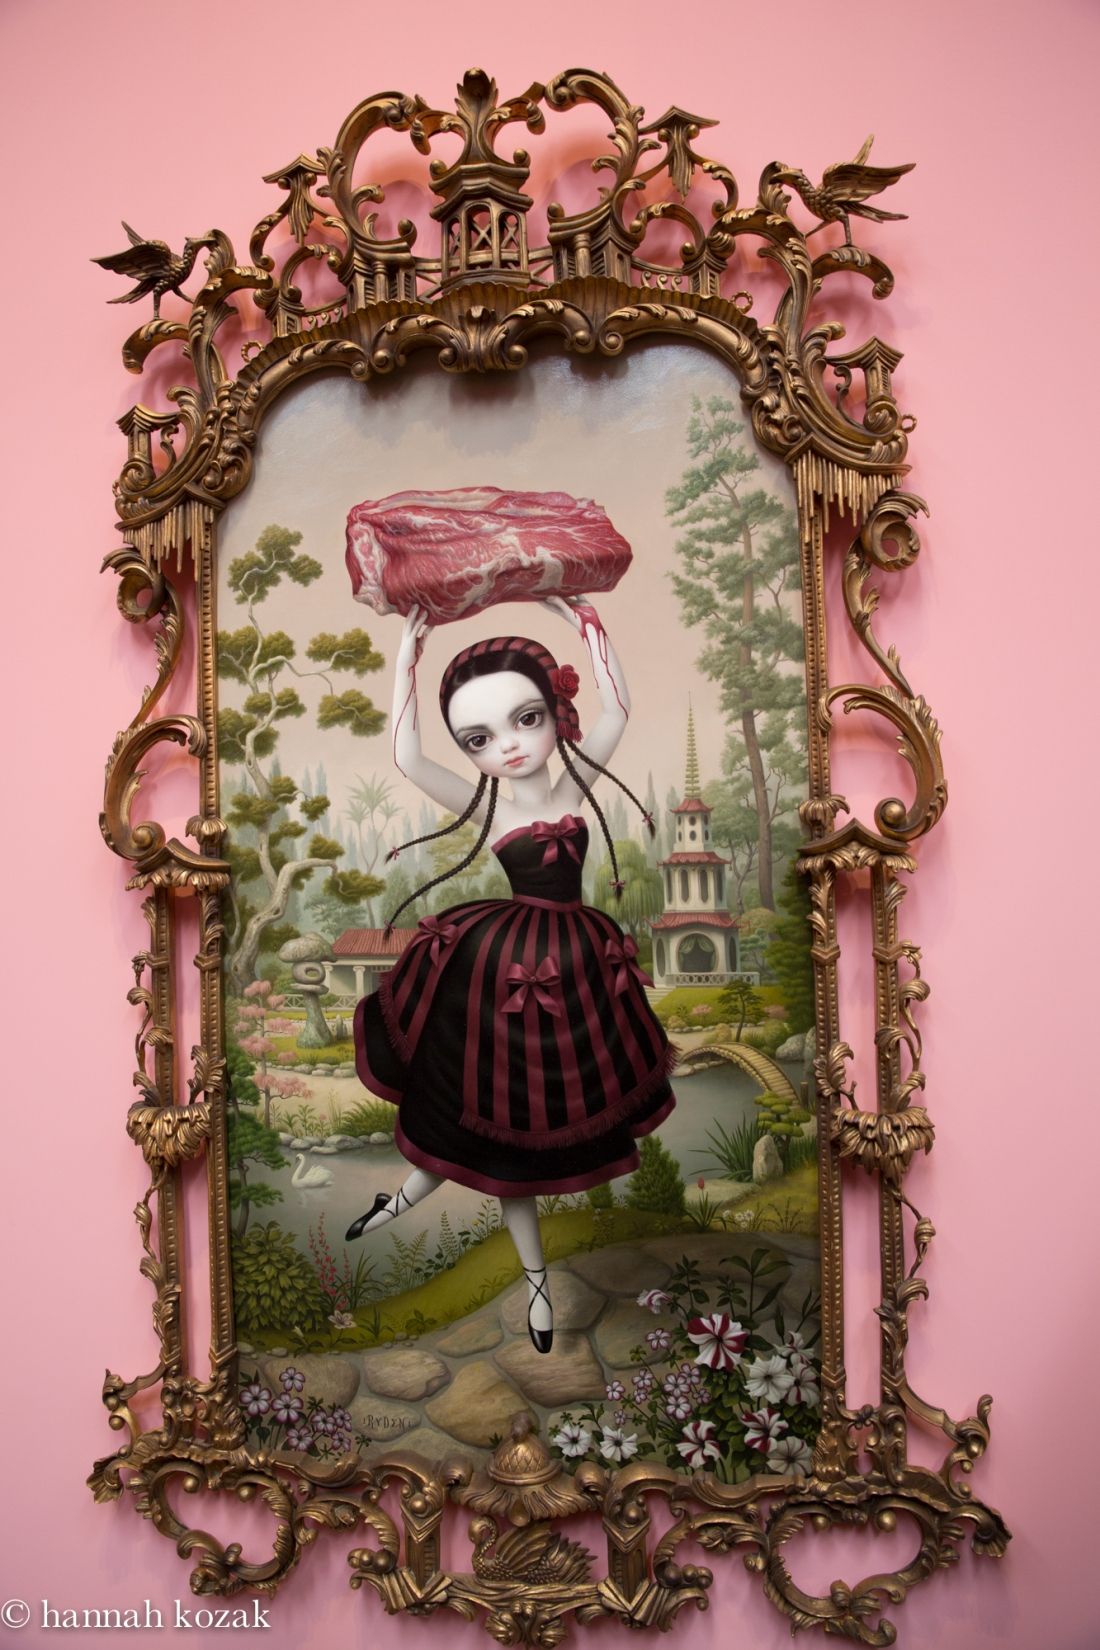 Mark Ryden, Meat Dancer, 2011, Oil on canvas with vintage frame, 75 x 50 inches.